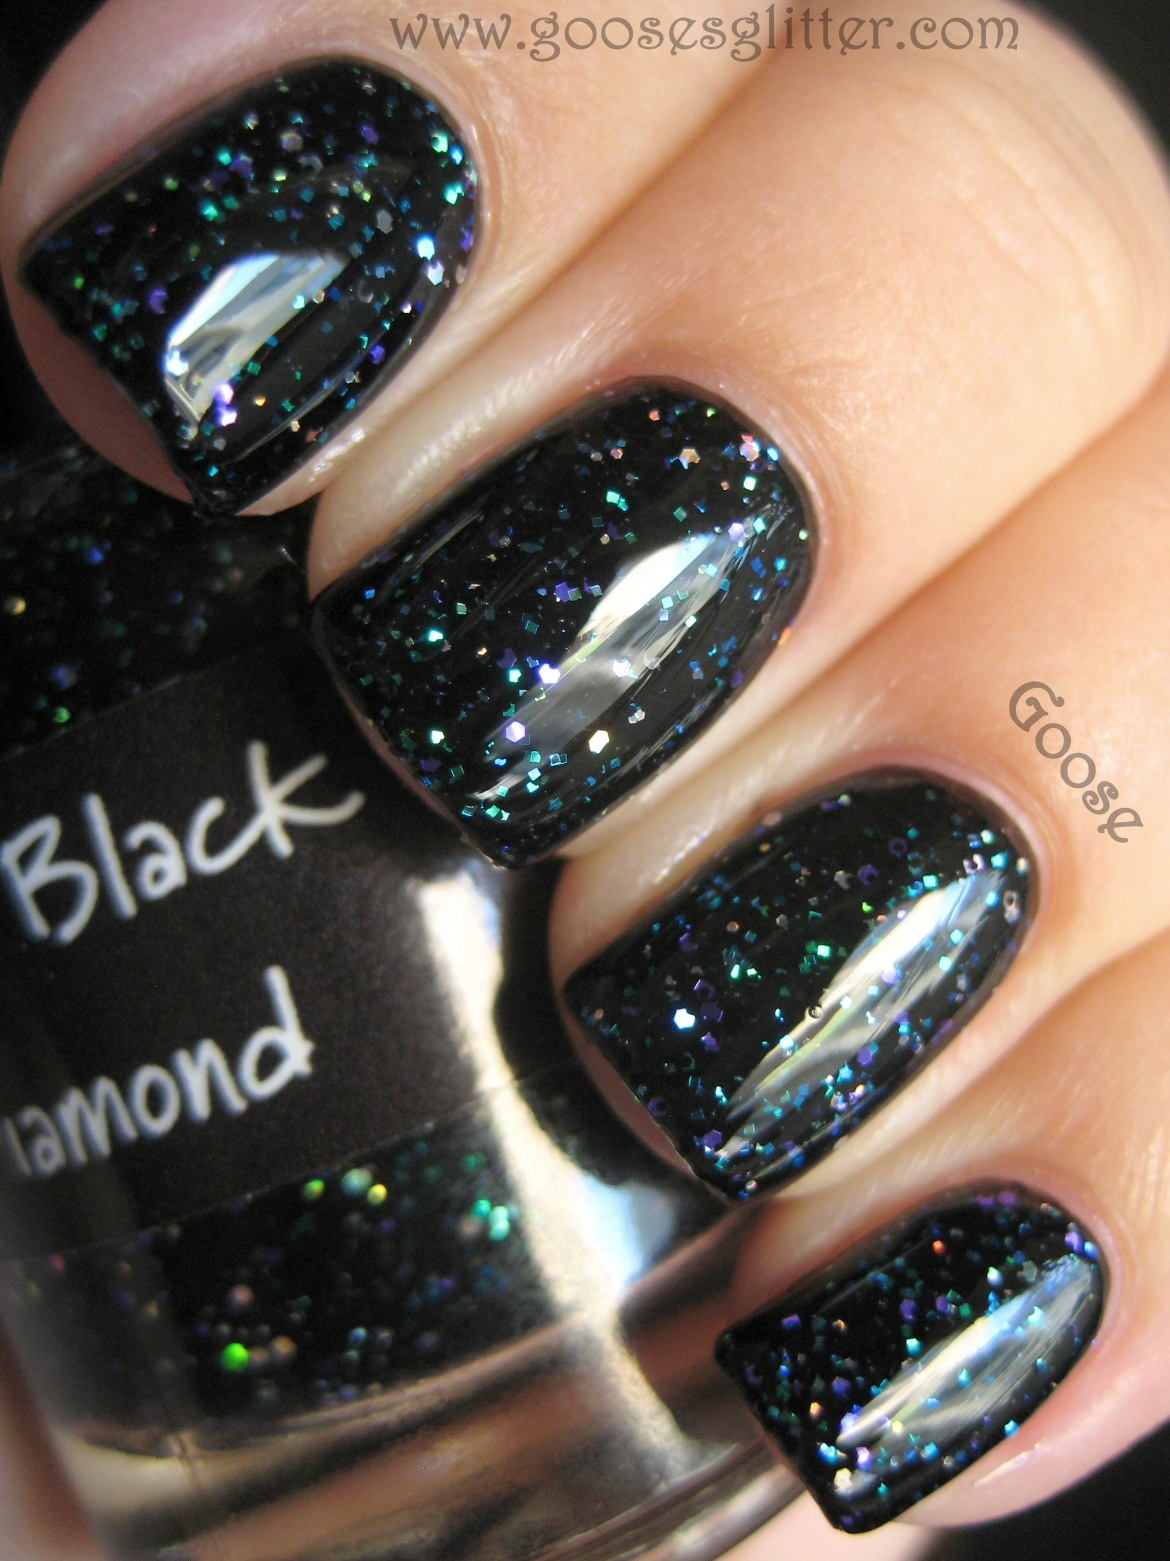 Goose S Glitter Crowstoes Triple Black Diamond Swatches And Review